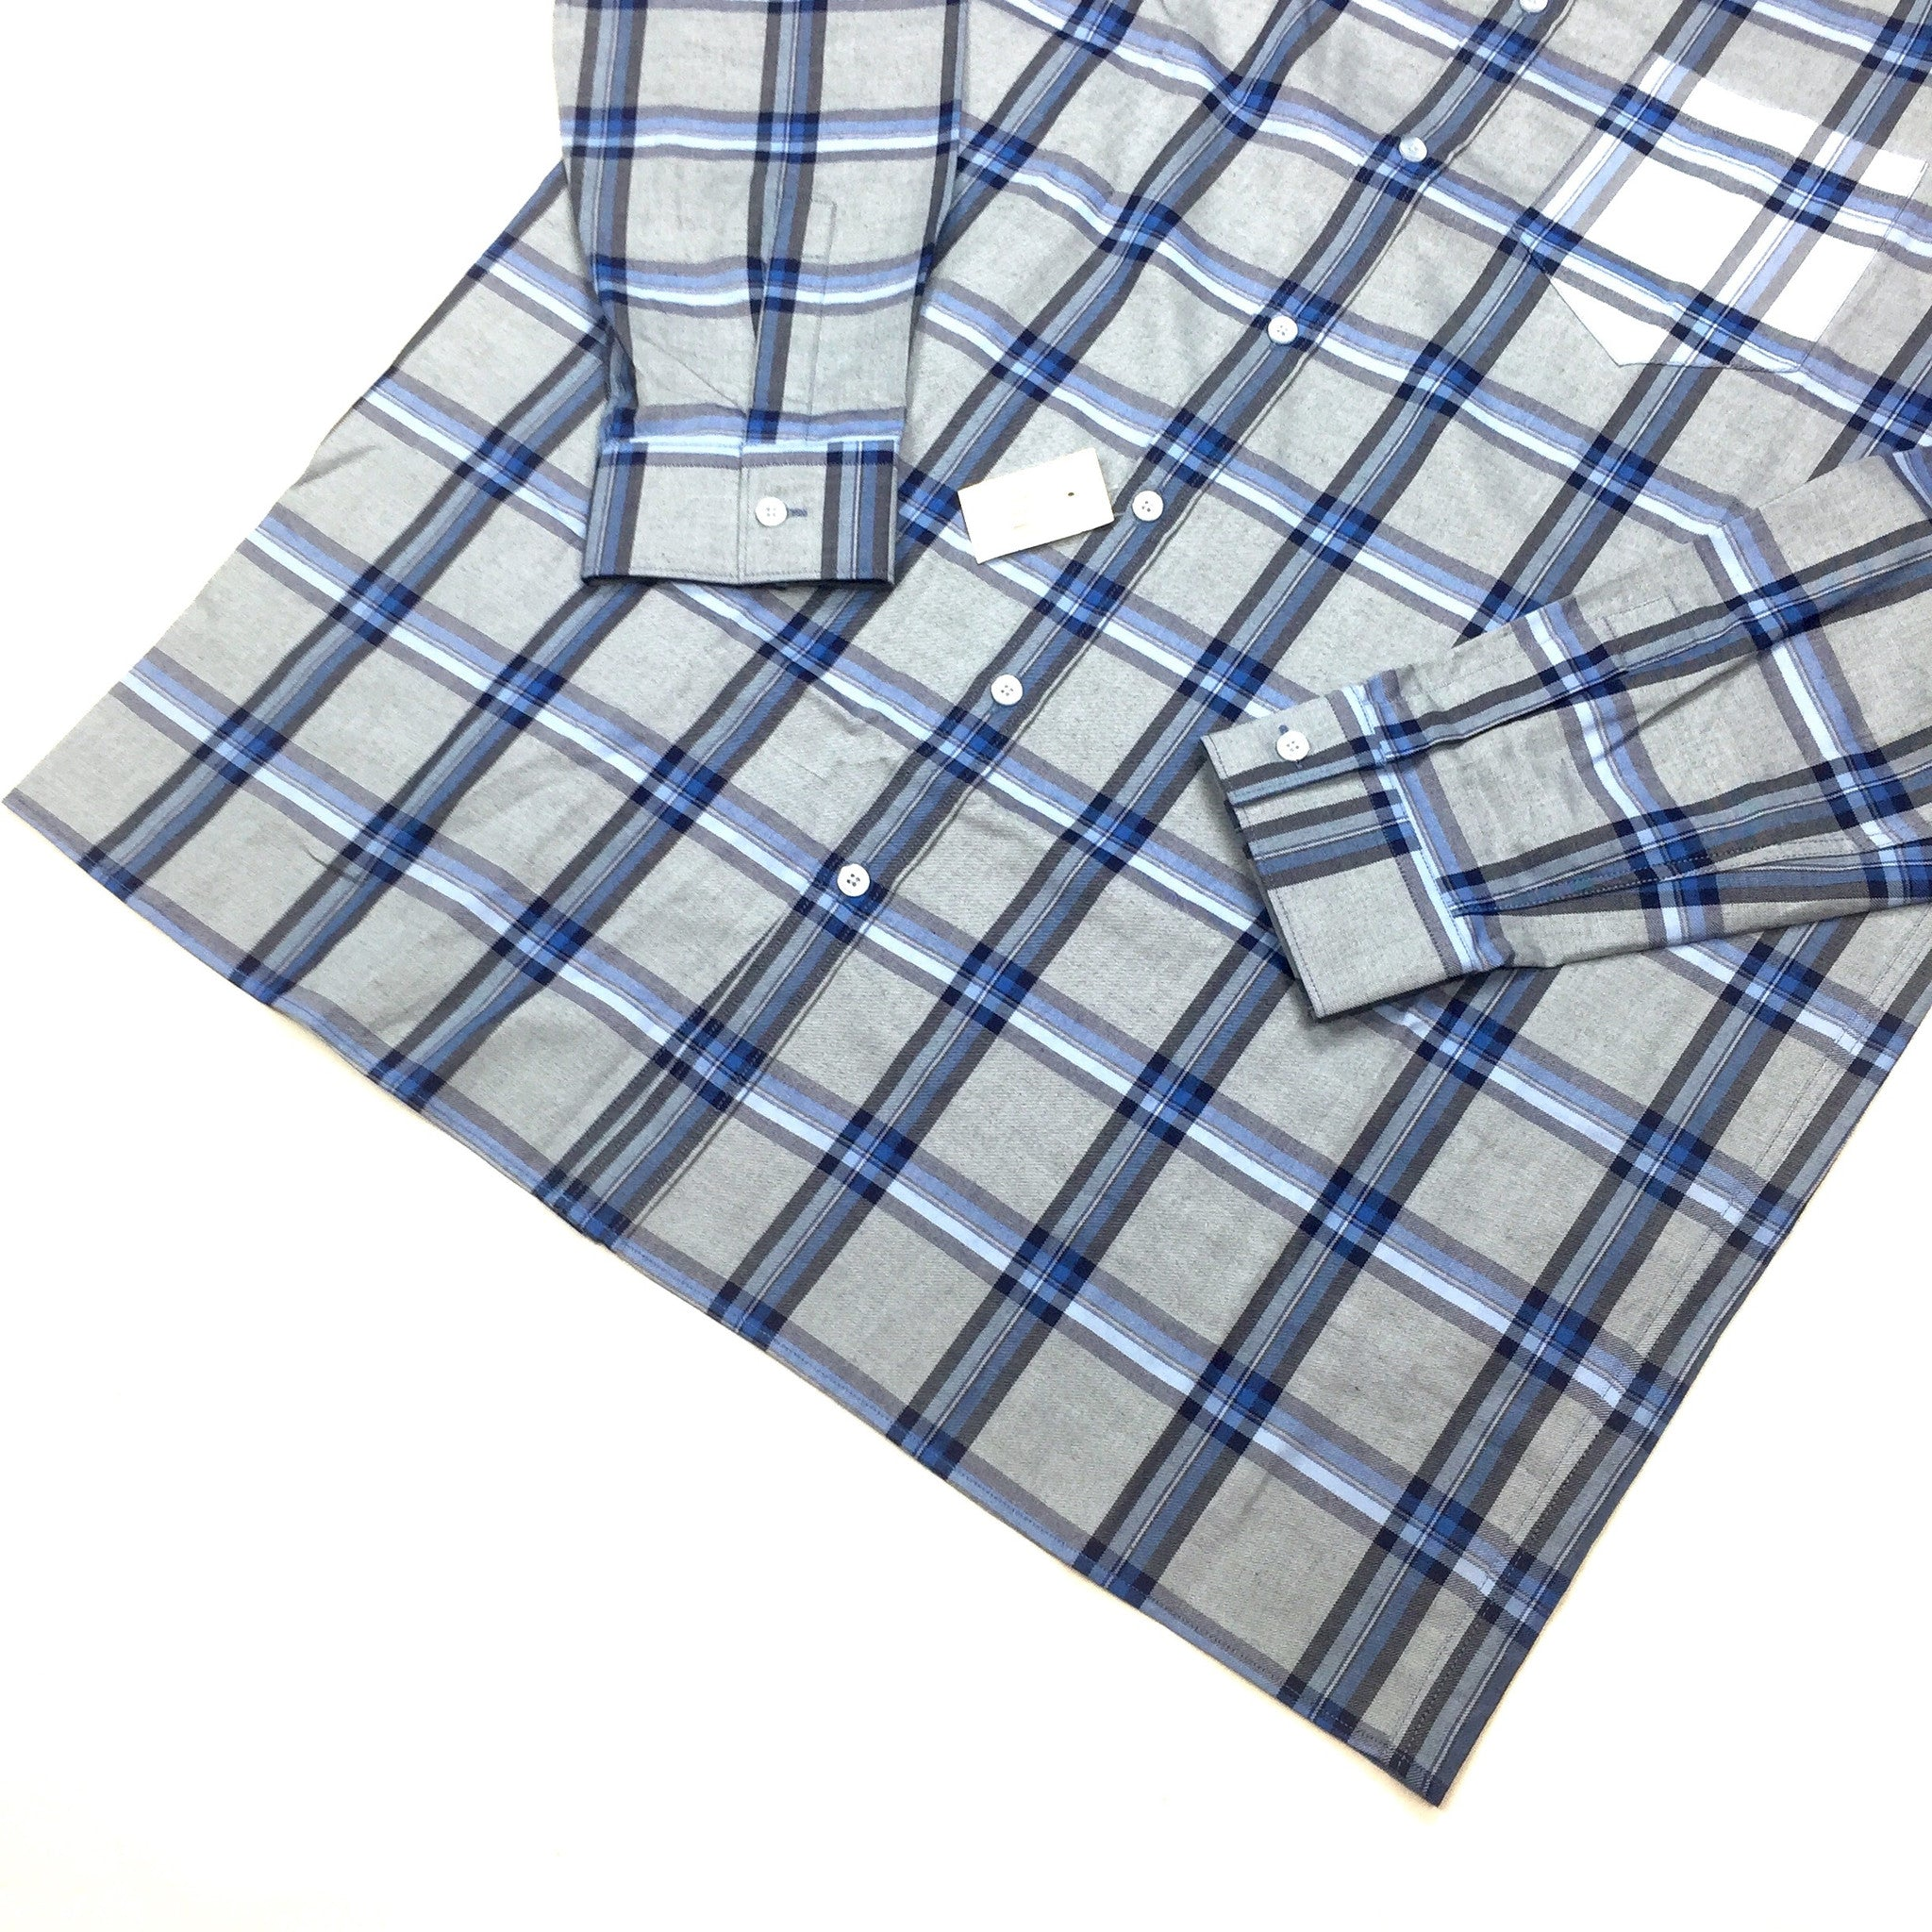 Givenchy - Light Blue Plaid Flannel Shirt